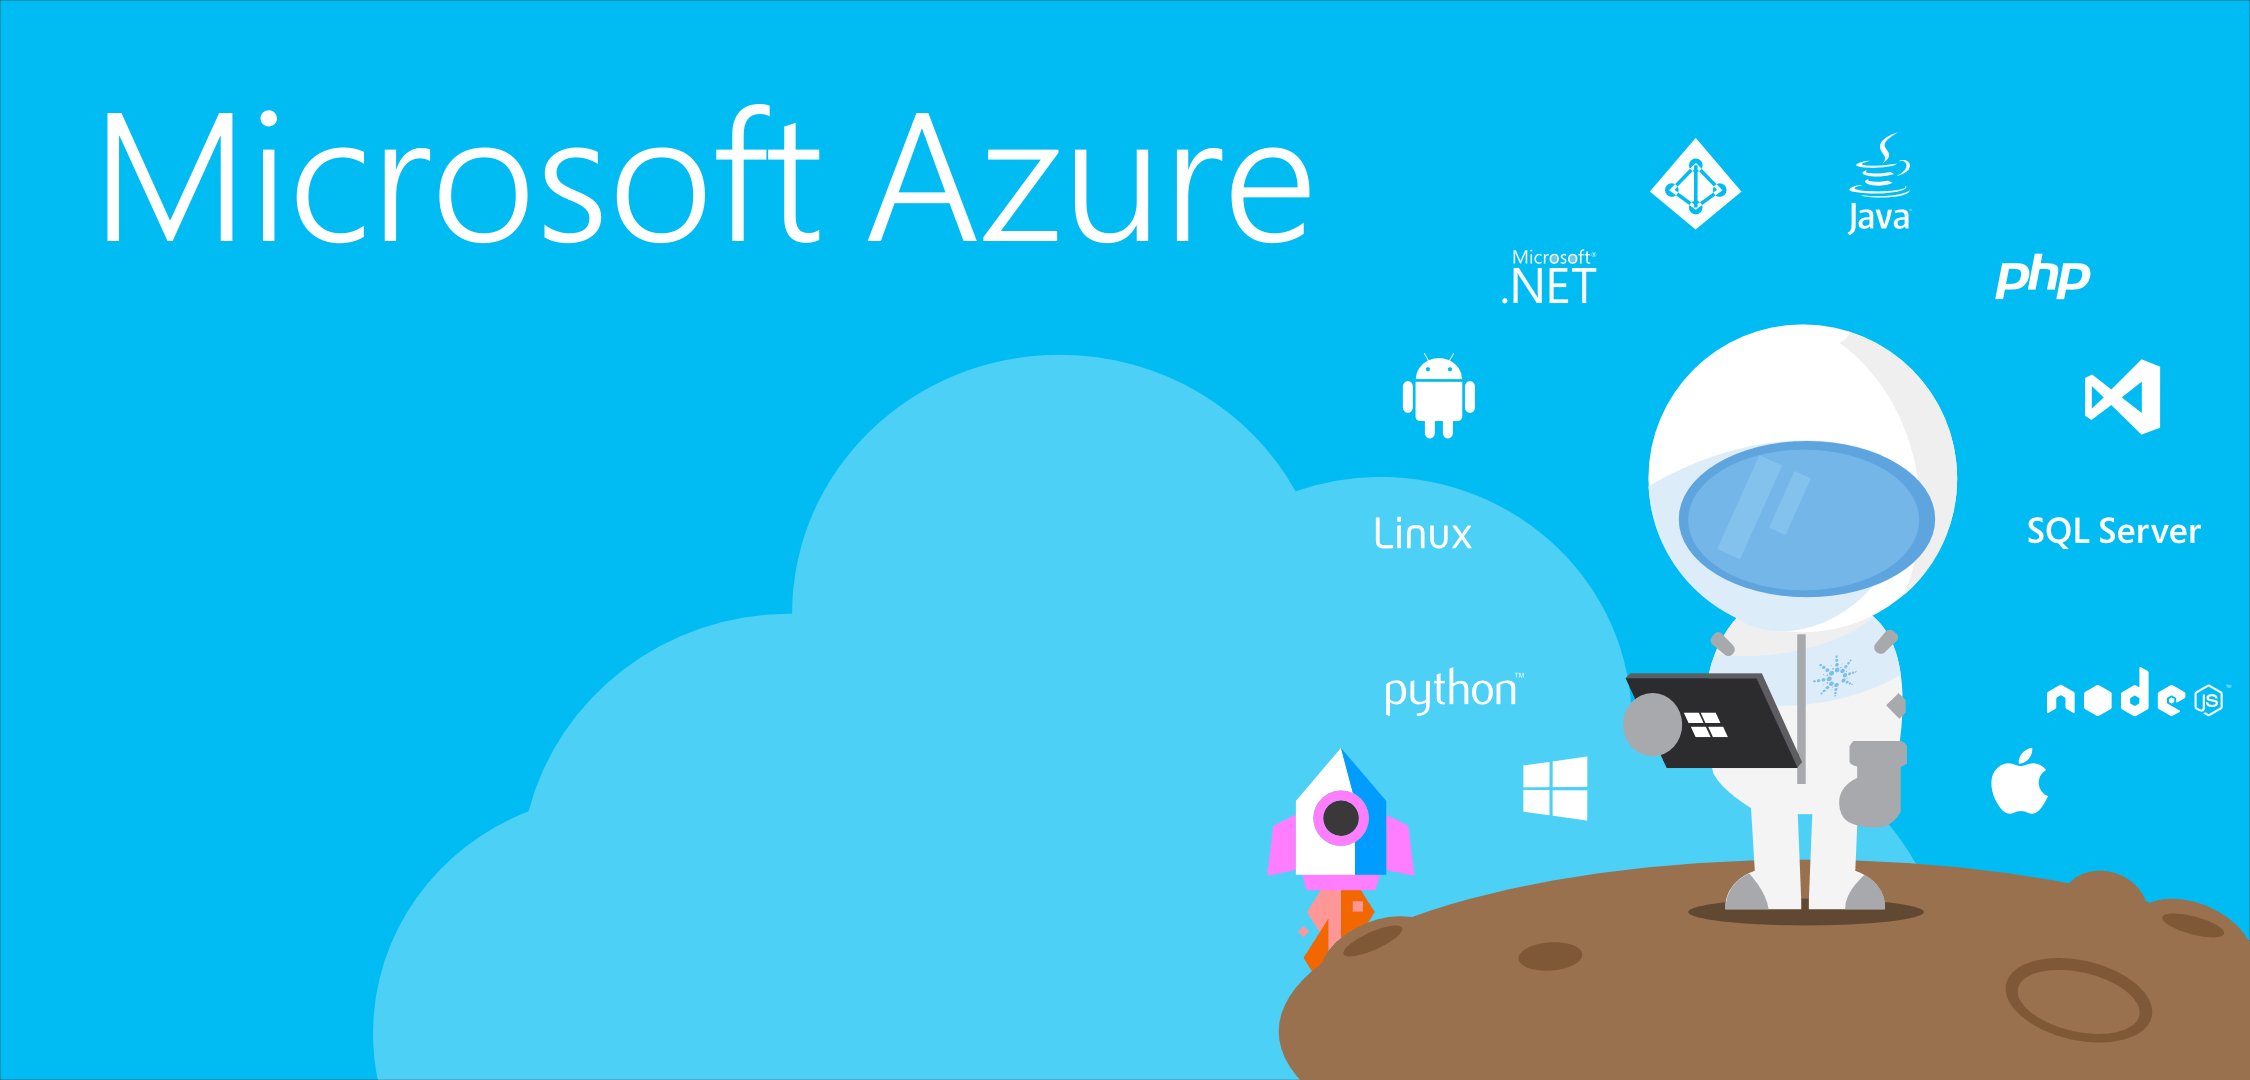 Azure Certification Training can Upskill Your Cloud